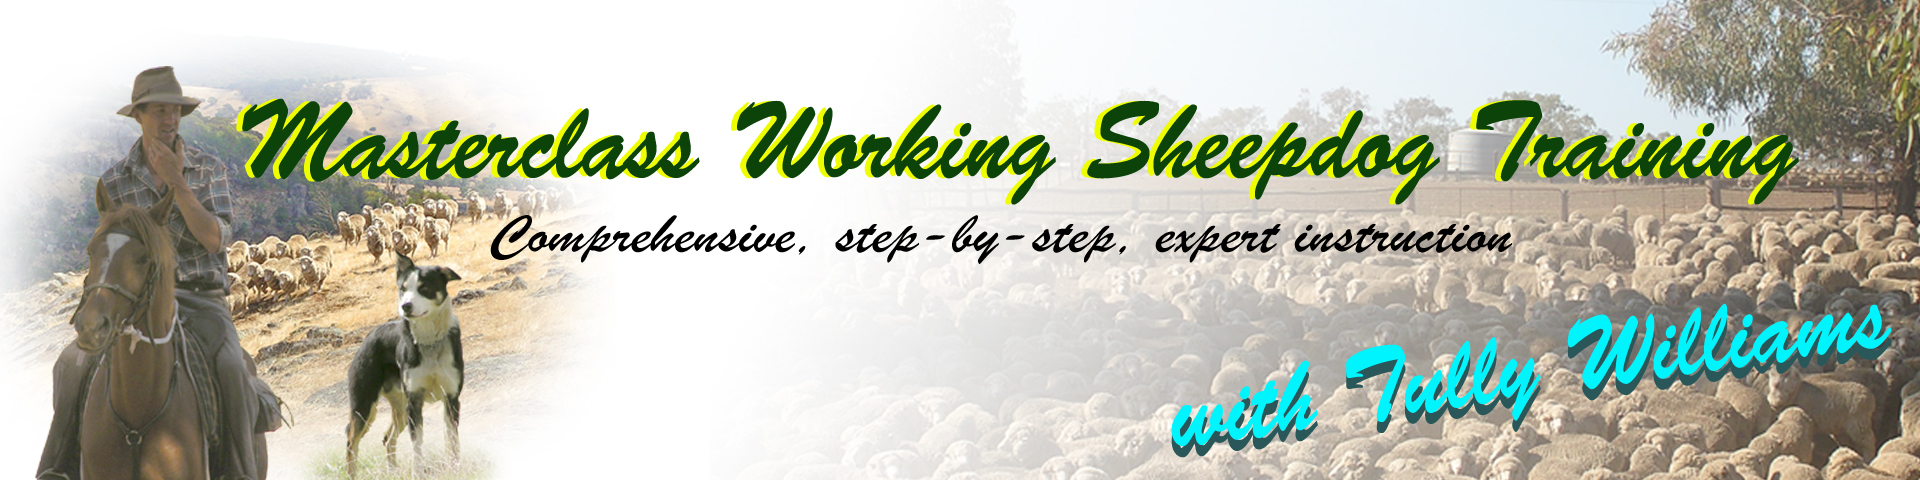 Working Sheepdog Training Masterclass videos header image